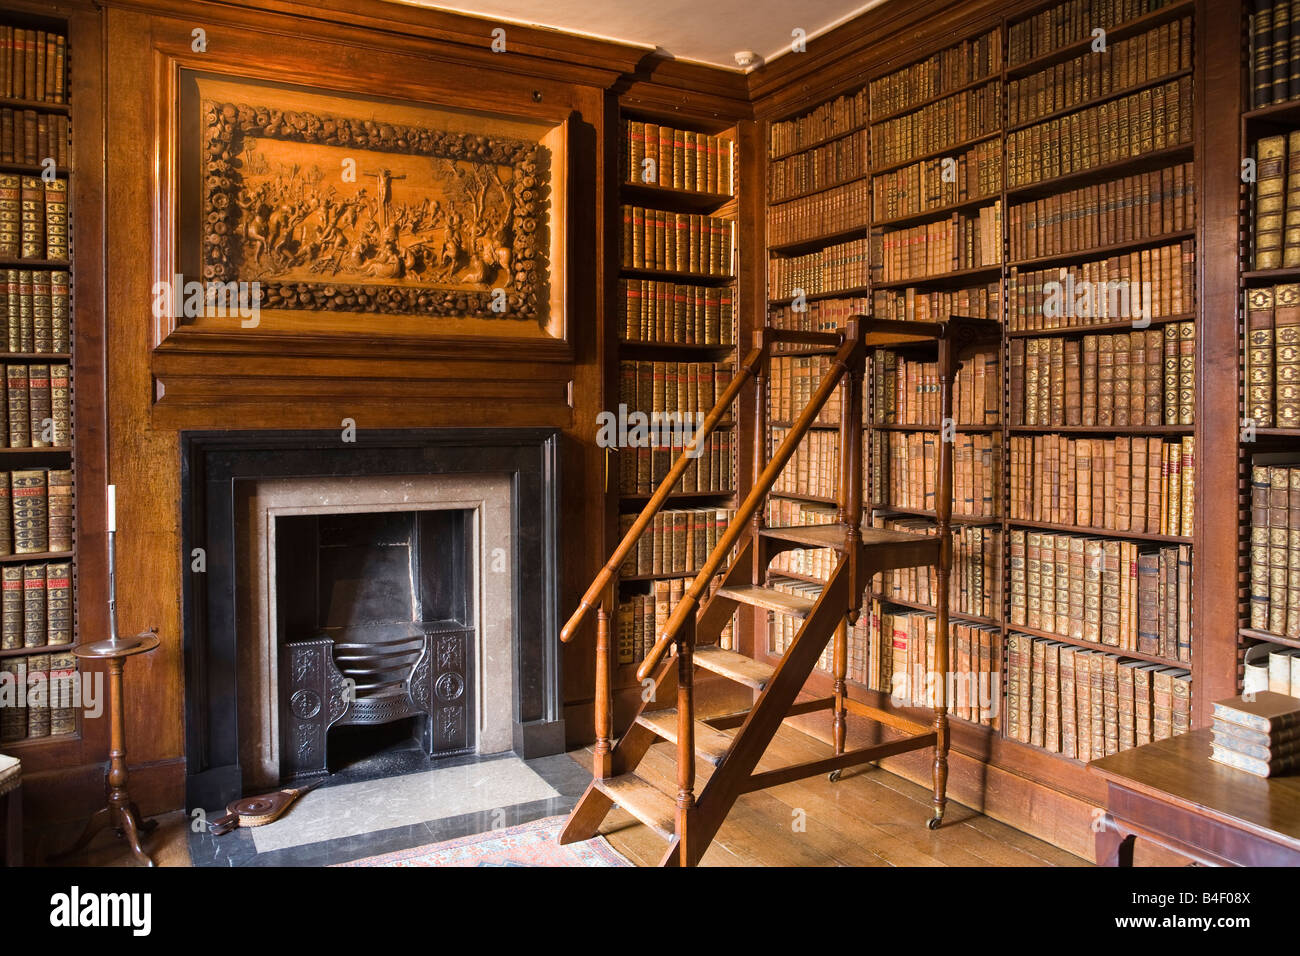 UK Cheshire Altrincham Dunham Massey Hall NT Library Grinling Gibbons crucifixion panel over fireplace - Stock Image